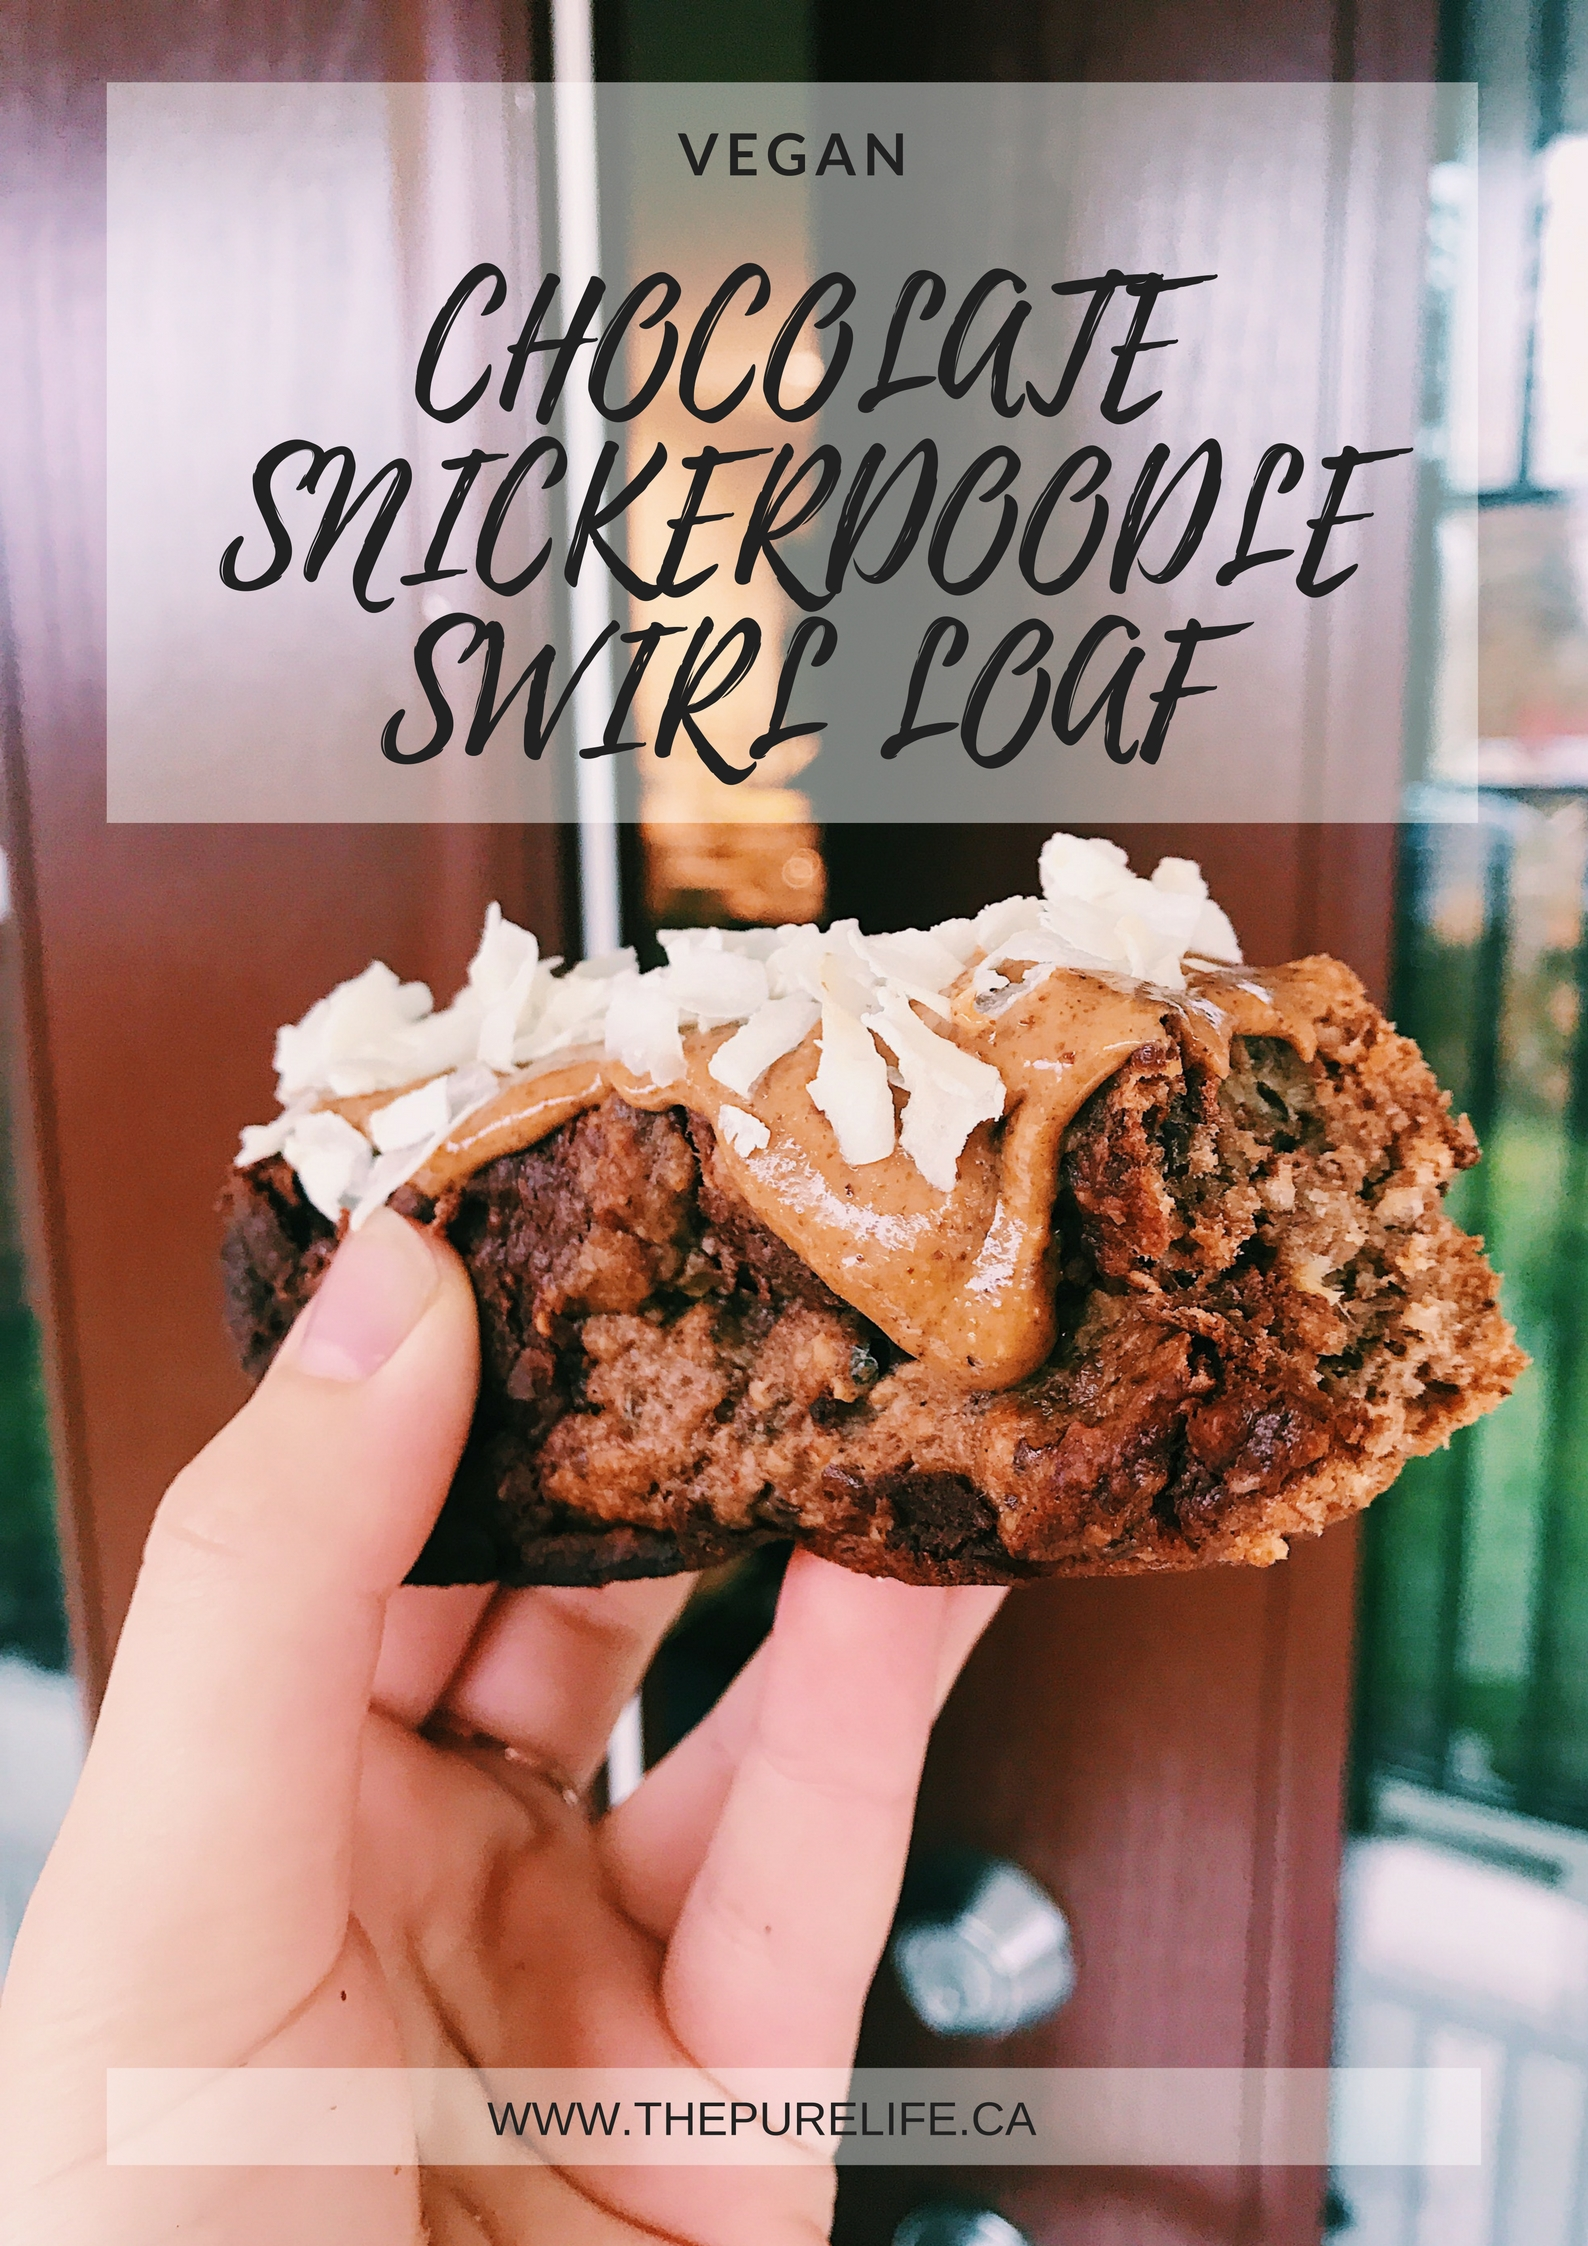 Chocolate Snickerdoodle Swirl Loaf